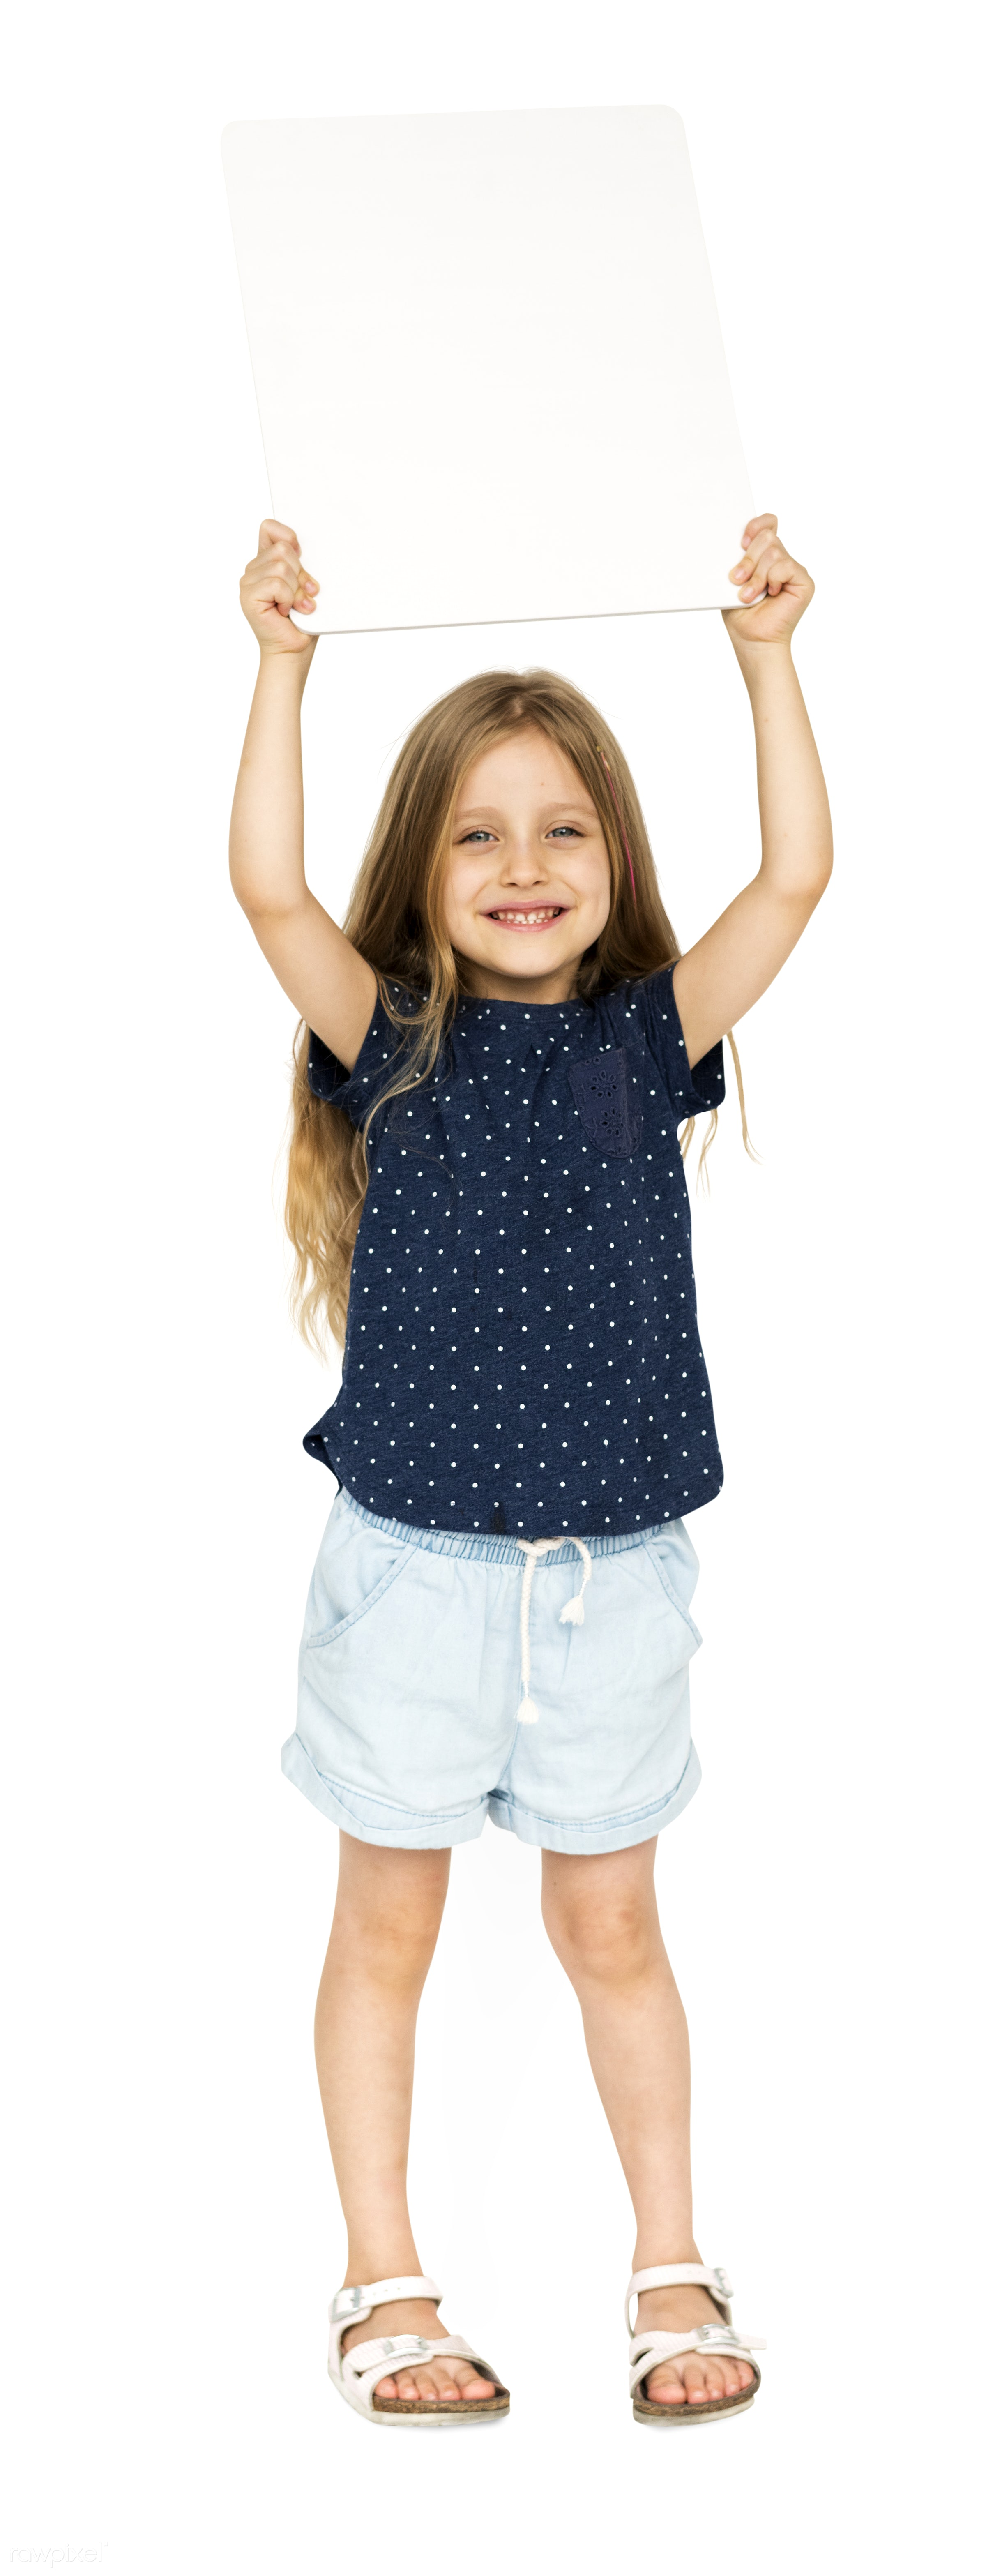 child, adorable, arms raised, background, banner, blank, casual, charming, cheerful, childhood, copy space, cute, girl,...